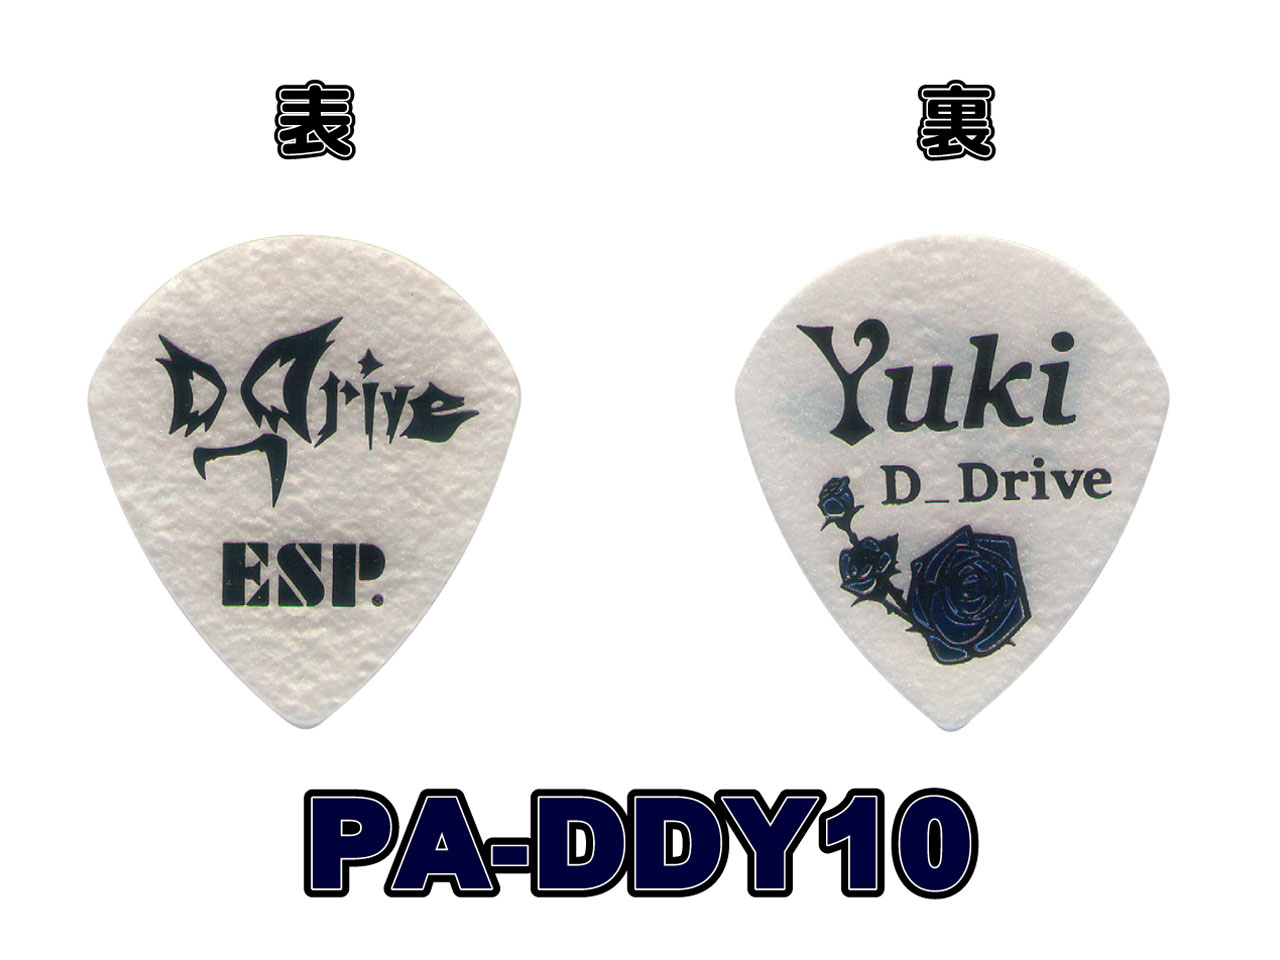 ESP(イーエスピー) Artist Pick Series PA-DDY10 (D_Drive/Yuki Model)